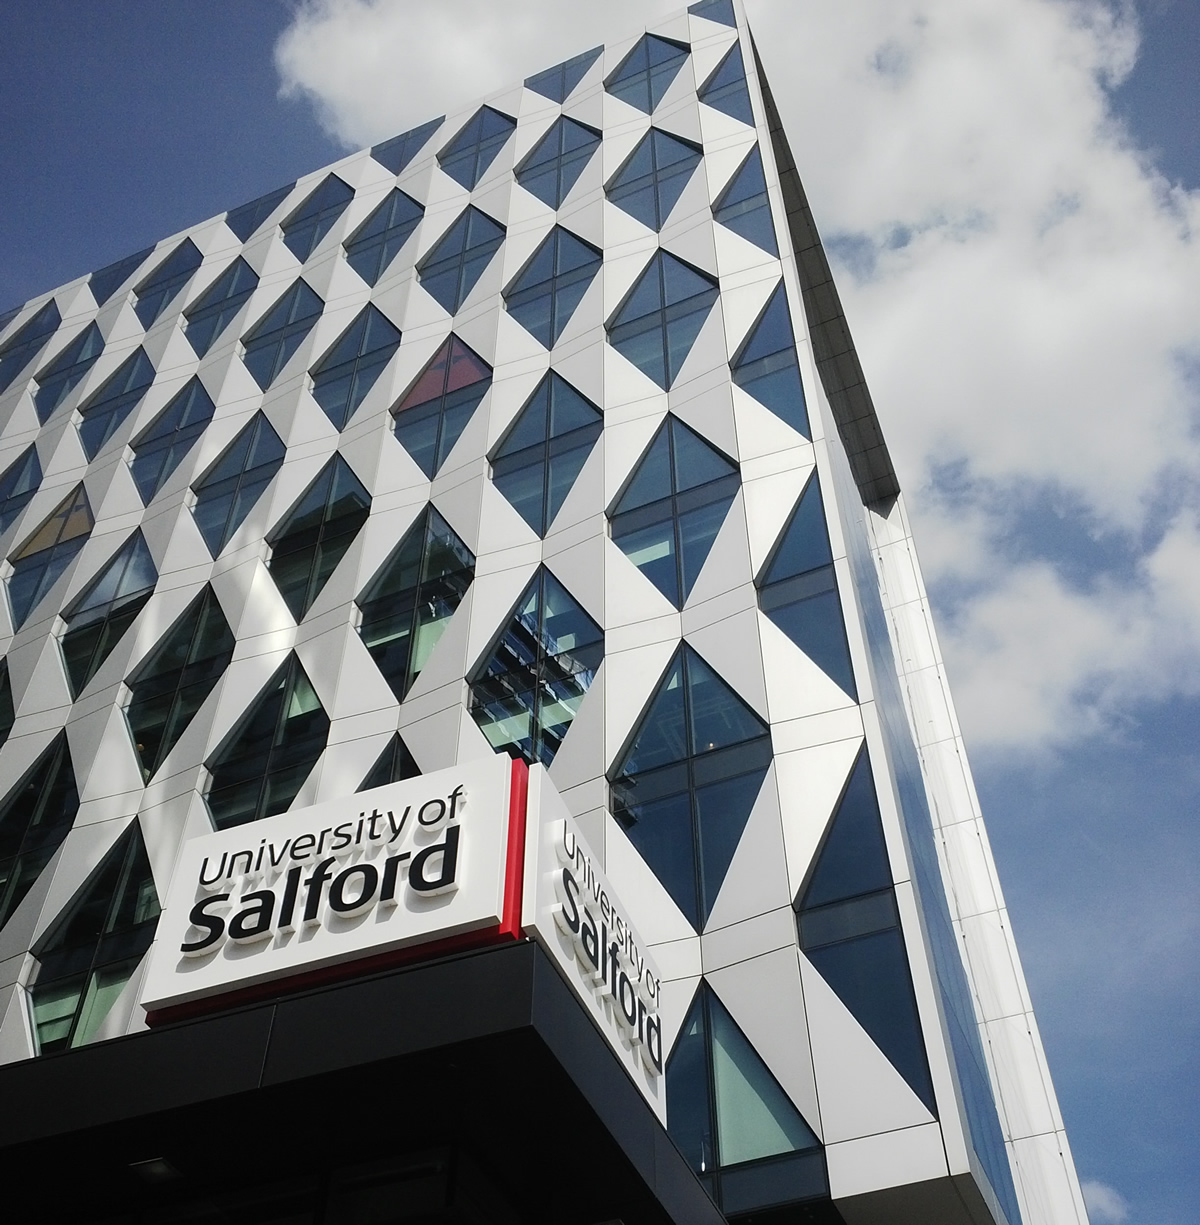 Find the Library space on the first floor of the MediaCityUK campus building